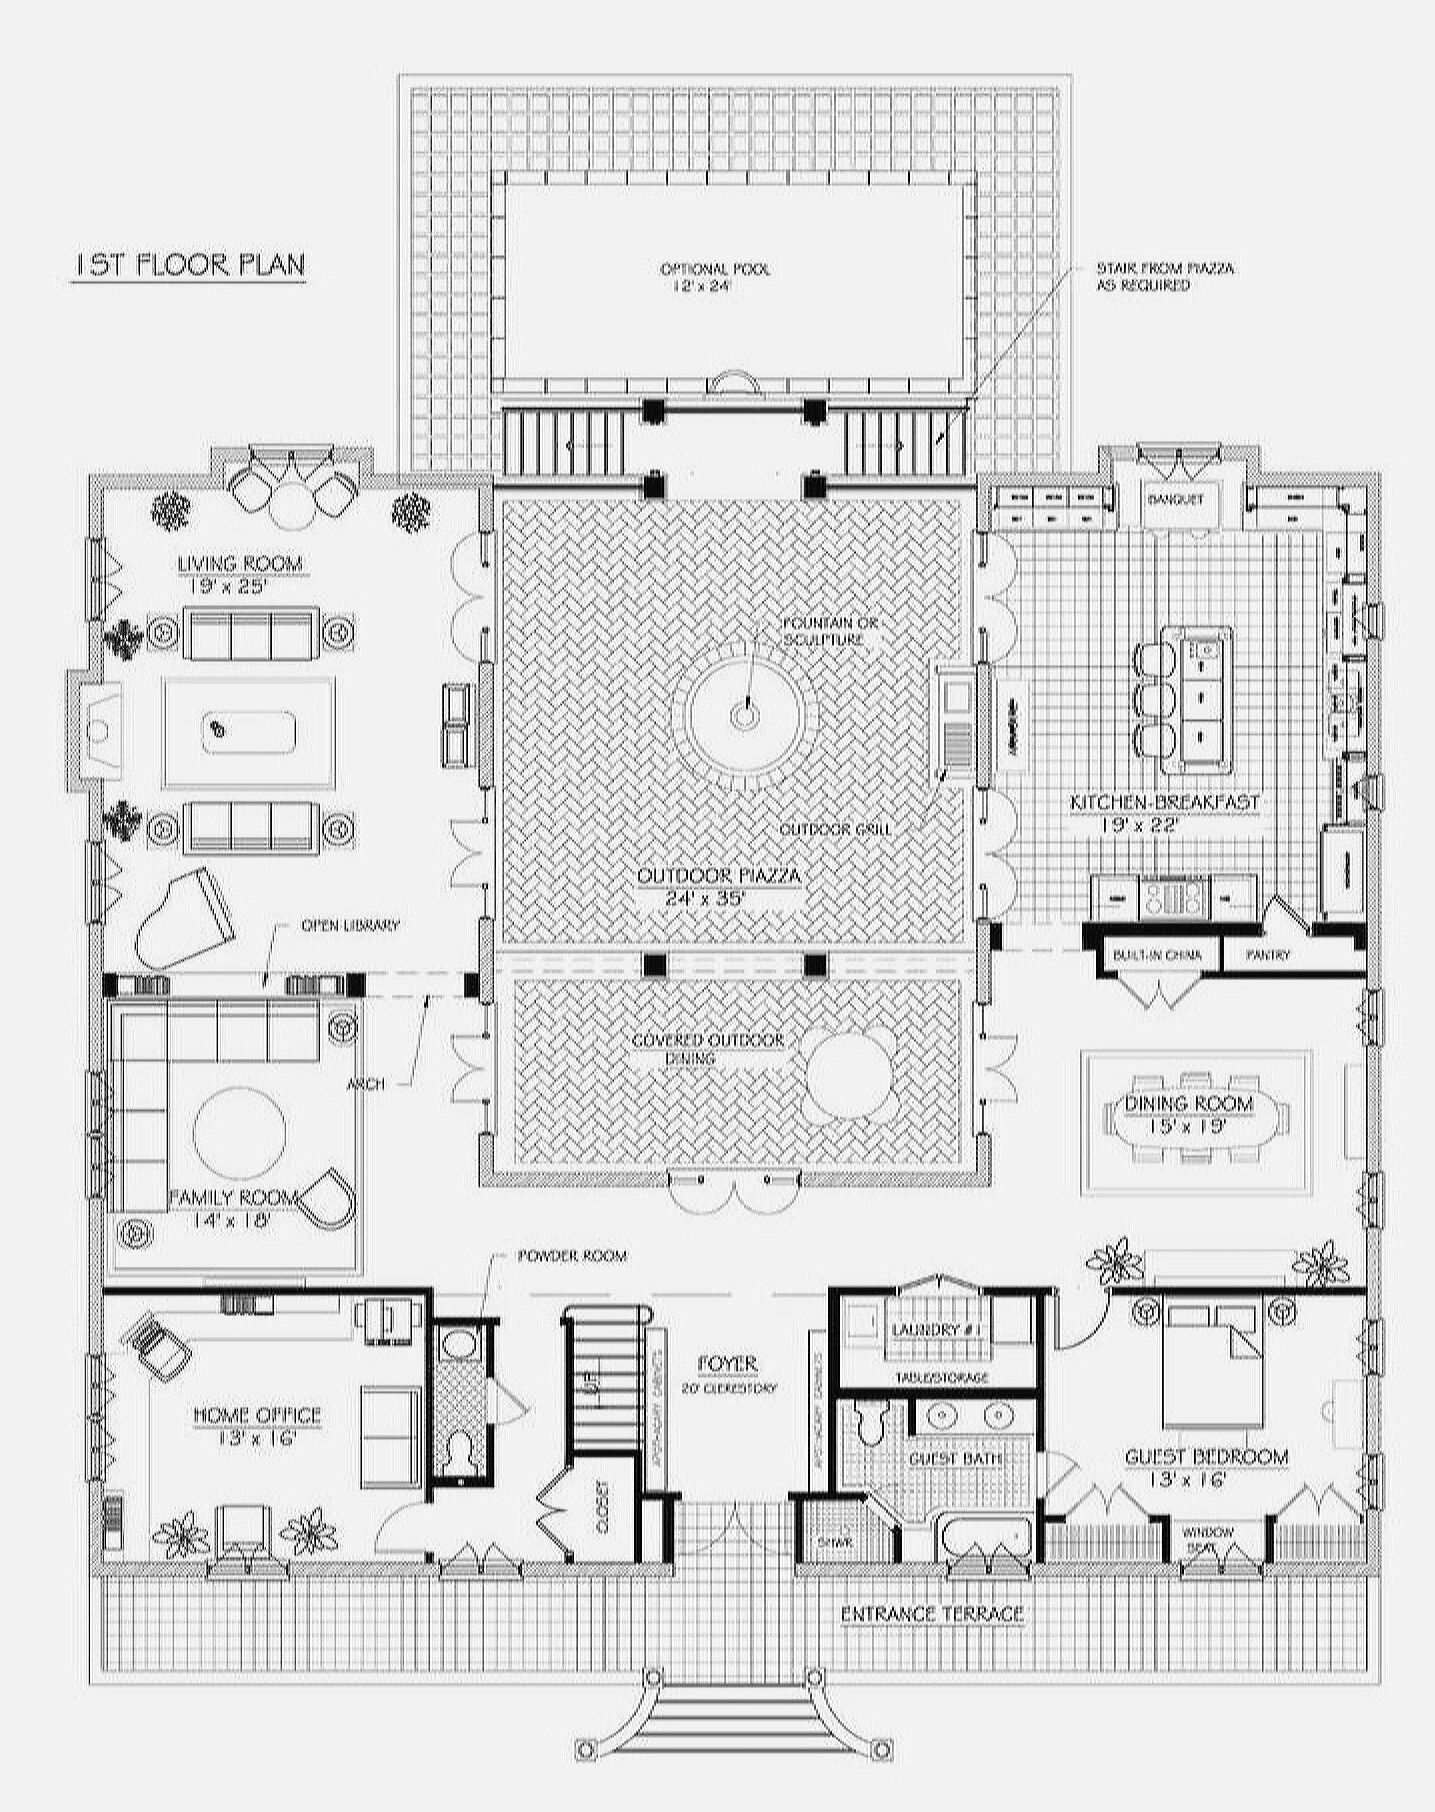 Pin By Anita Reina On Plans French House Plans House Floor Plans French Villa